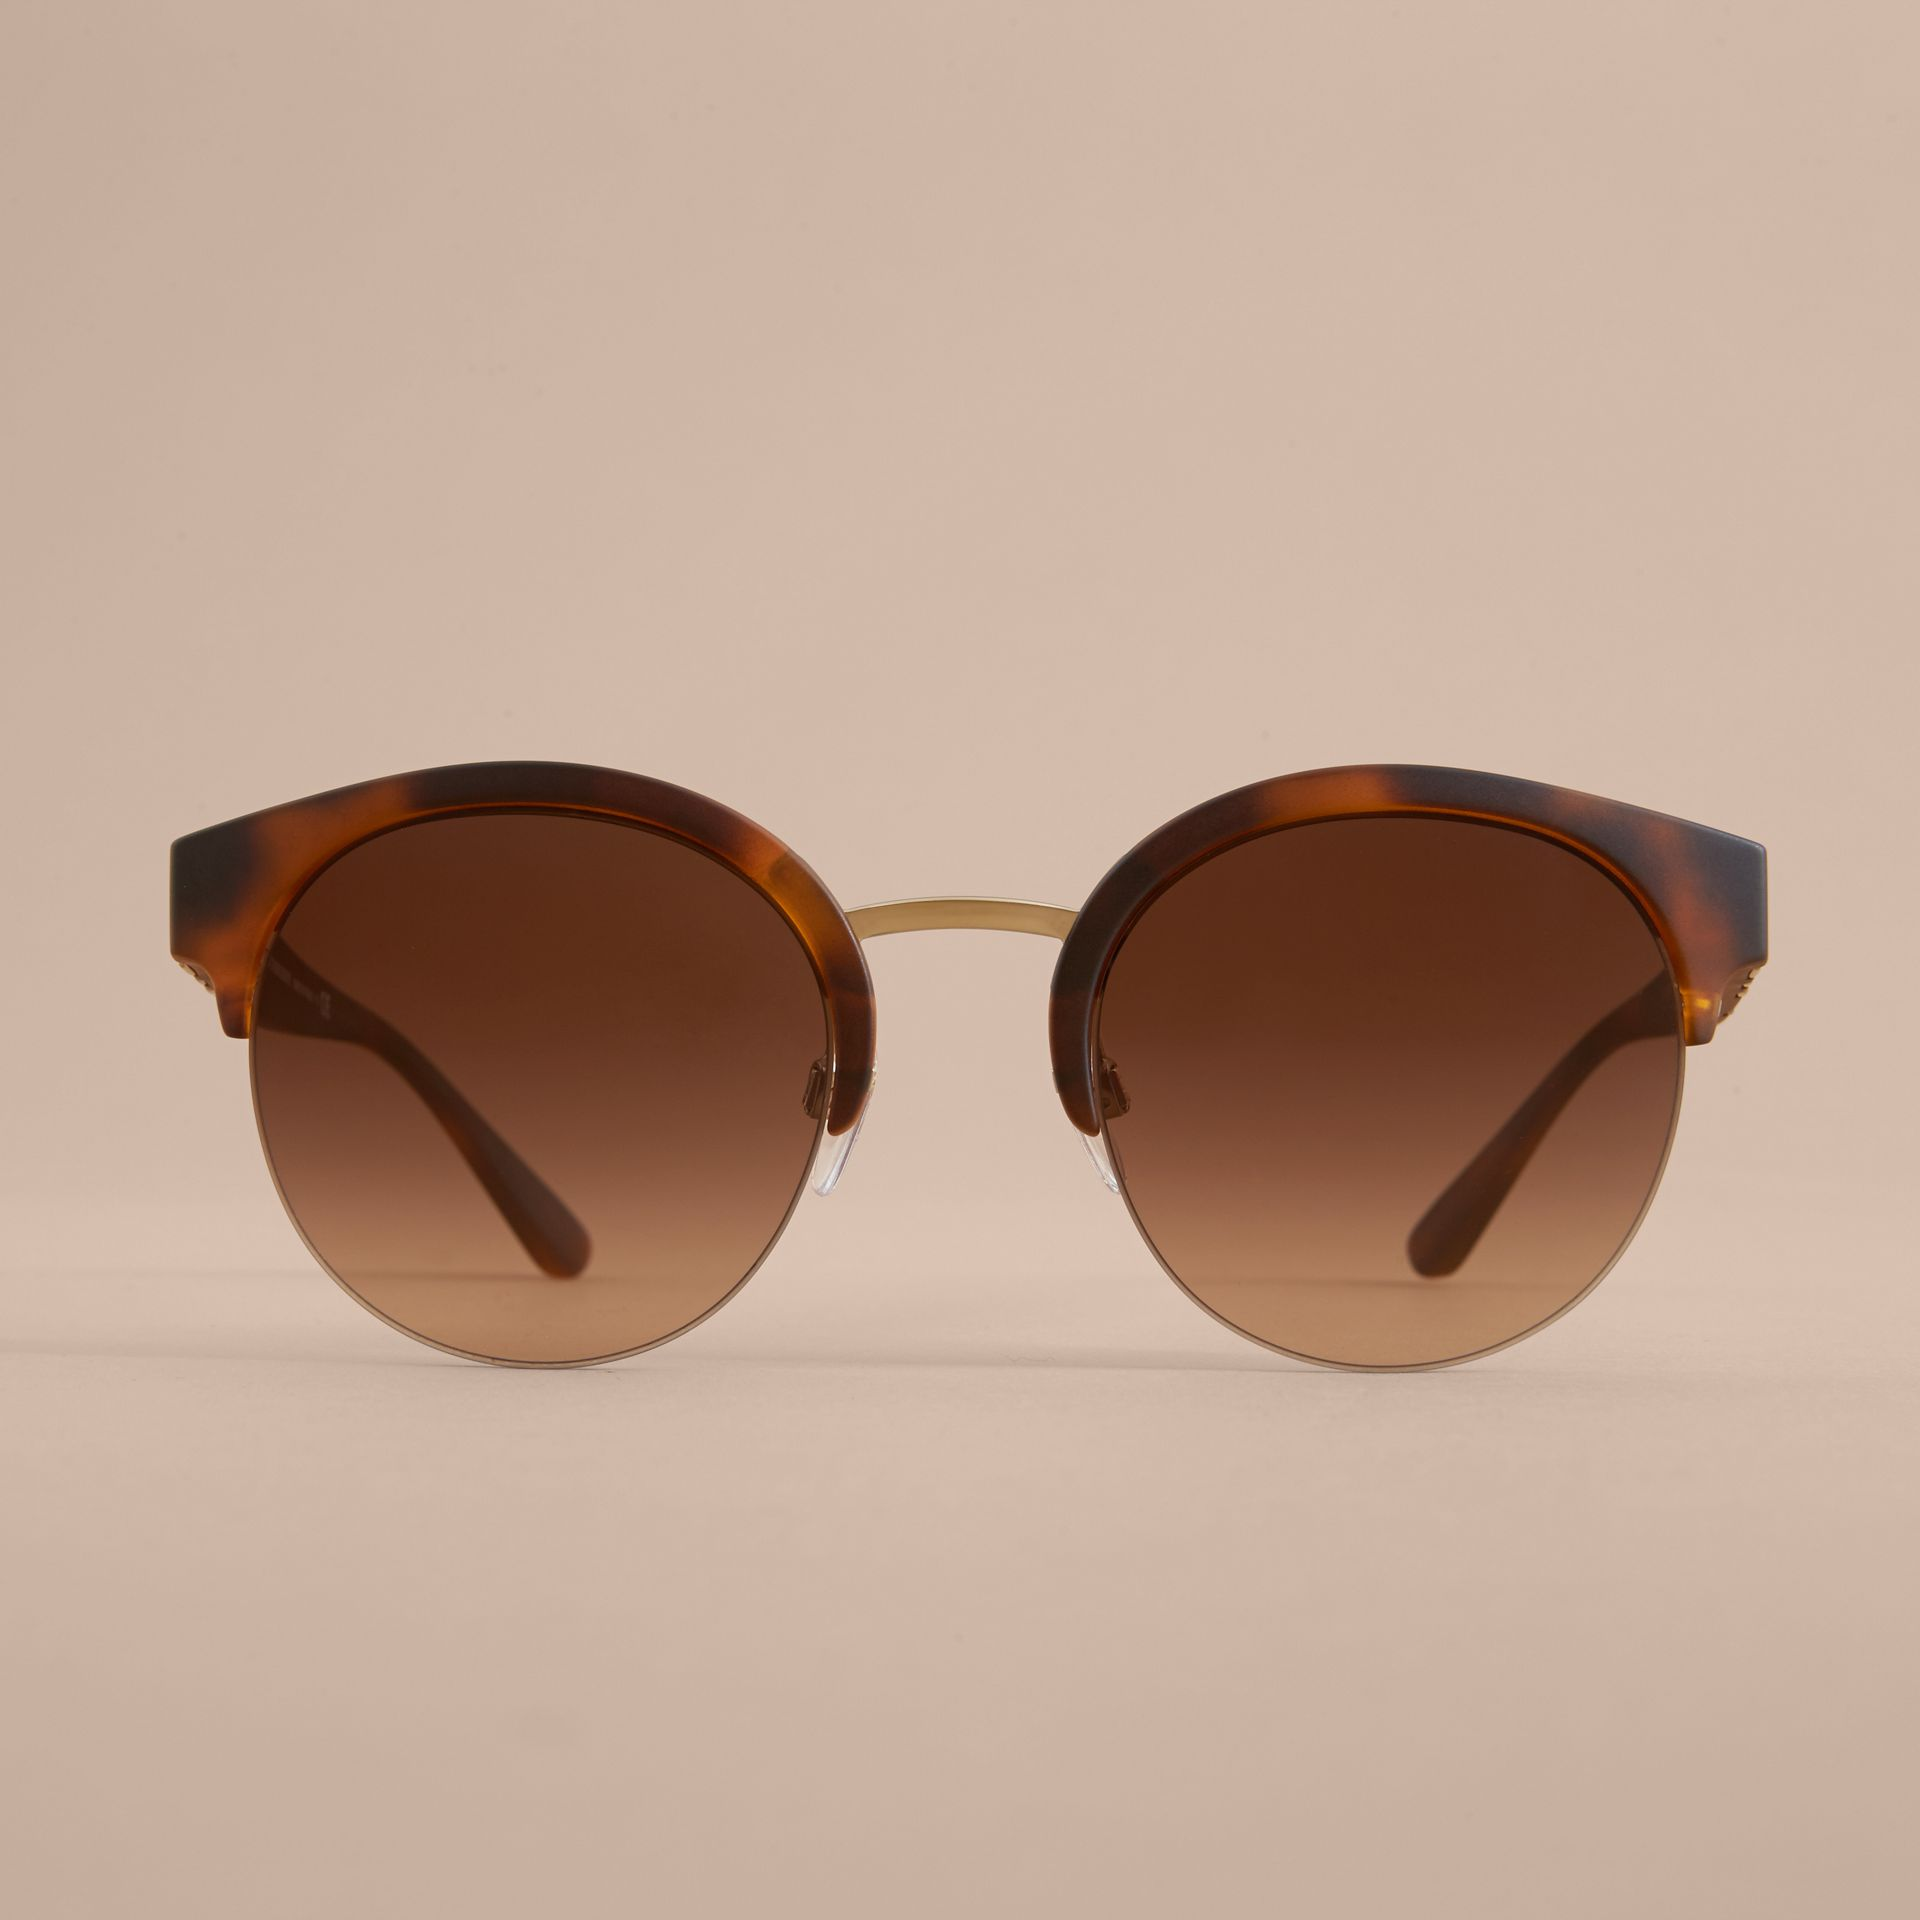 Check Detail Round Half-frame Sunglasses in Brown - Women | Burberry United States - gallery image 2